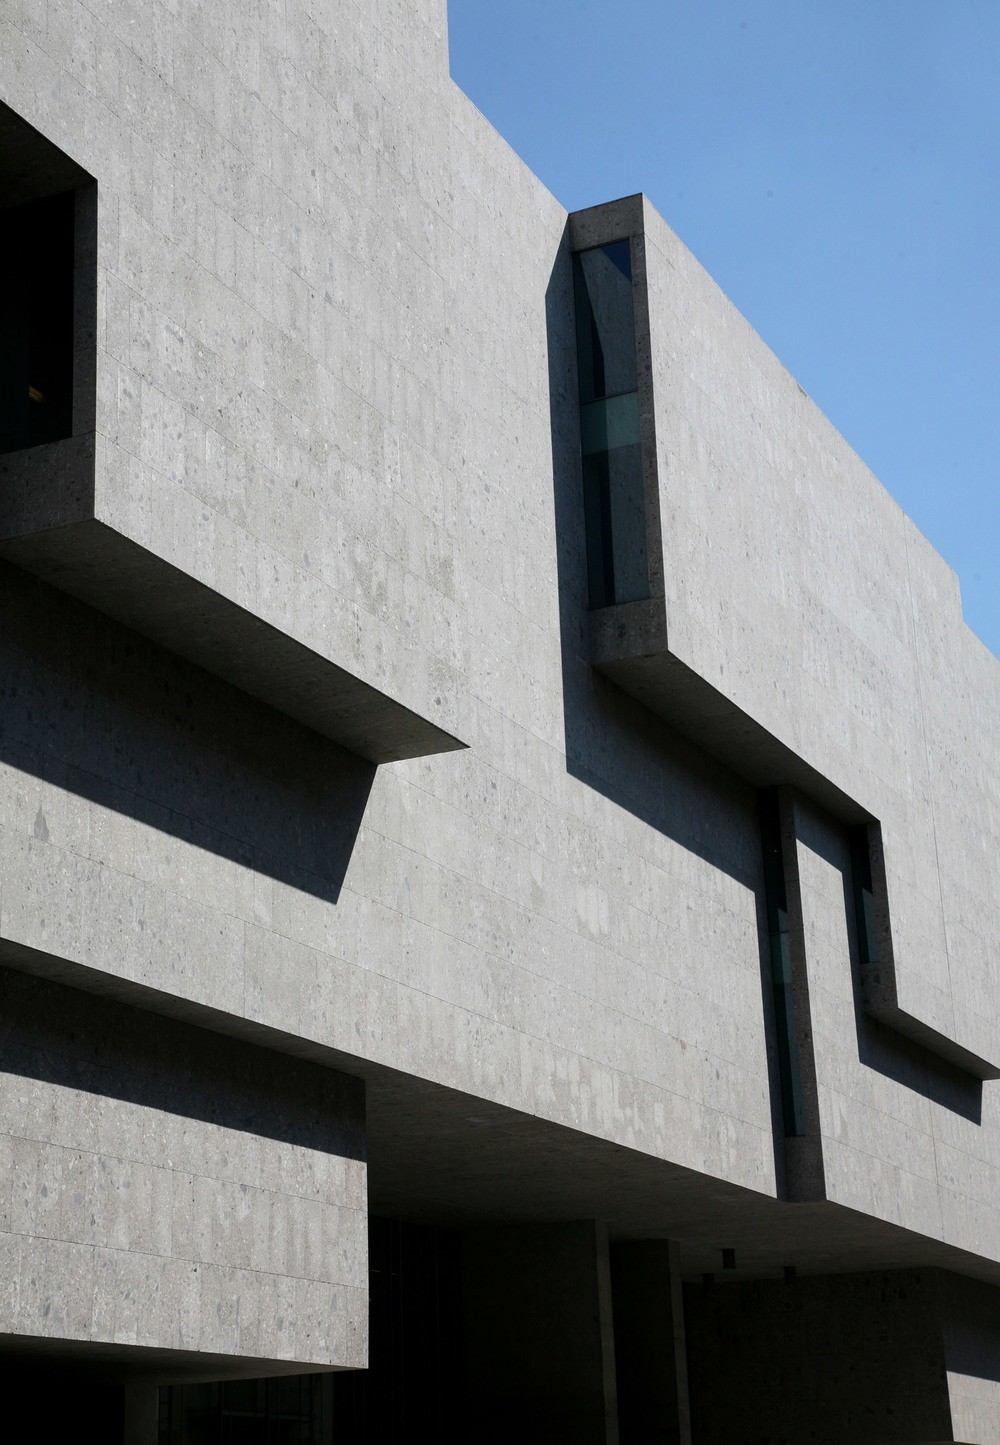 Universita-Commerciale-Luigi-Bocconi-Stepped-Facade.jpg